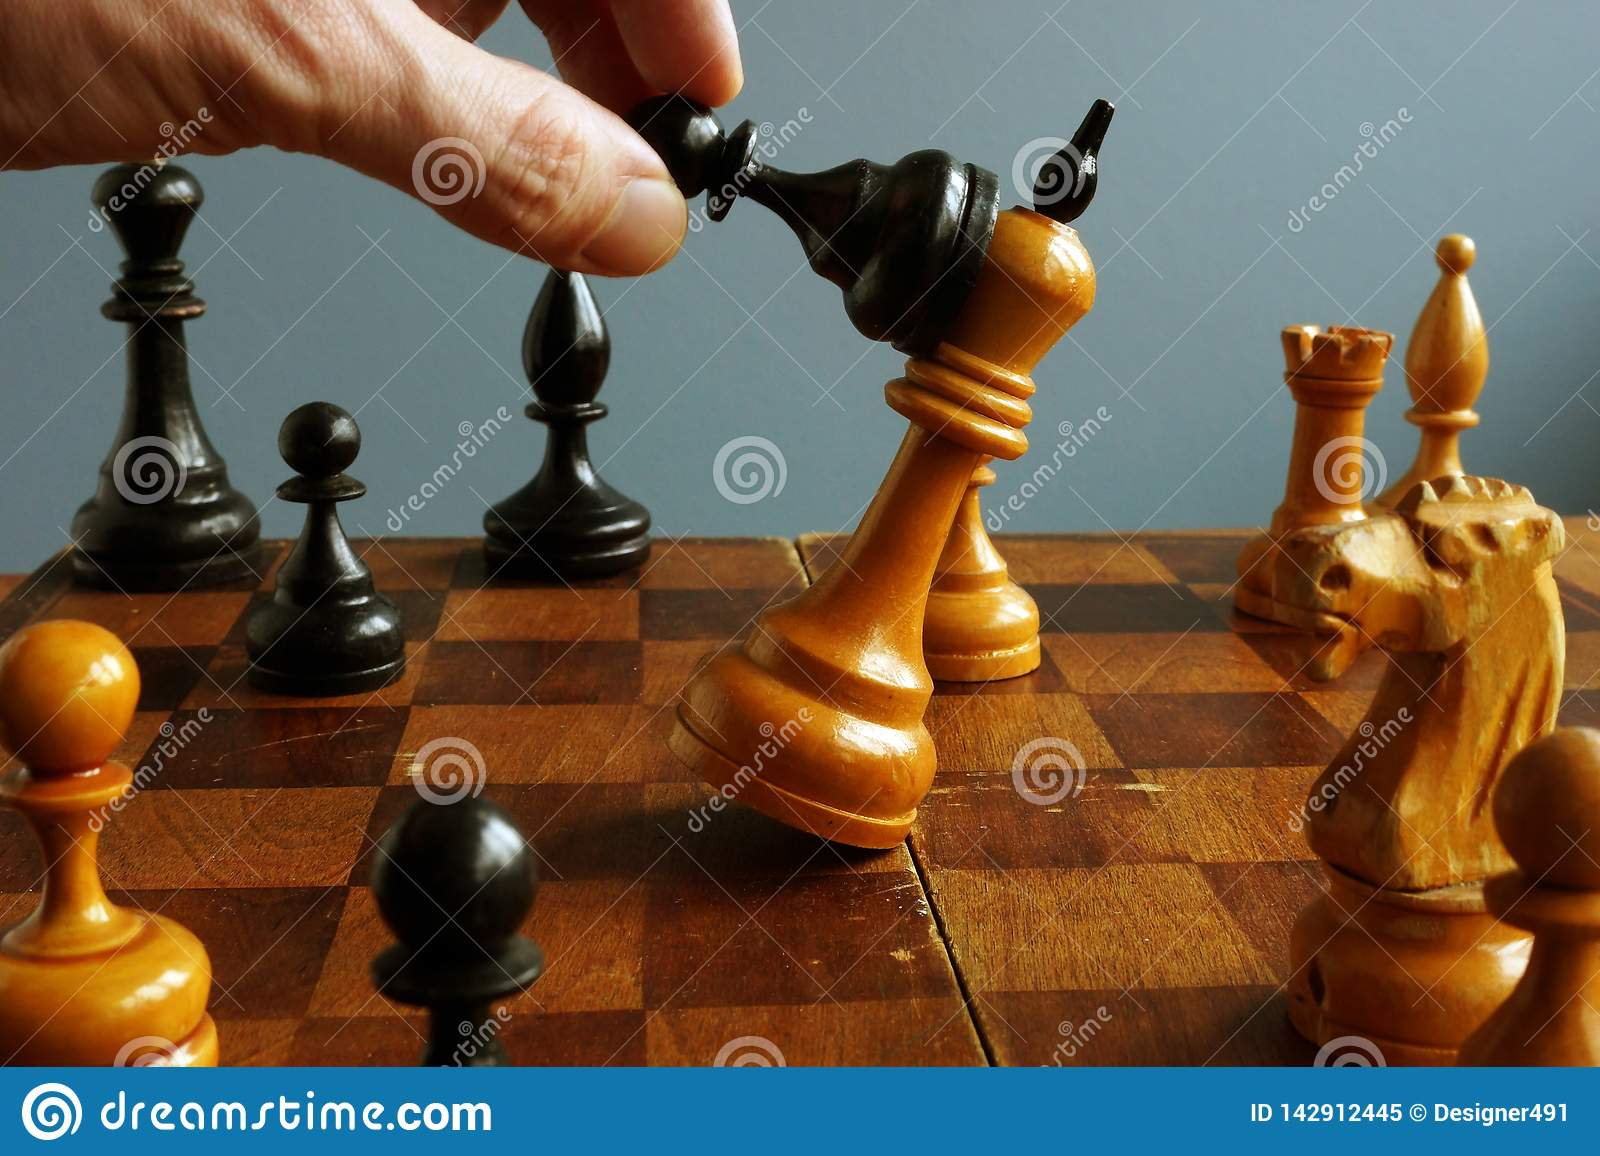 Success in business and confrontation in competition. Pawn wins king